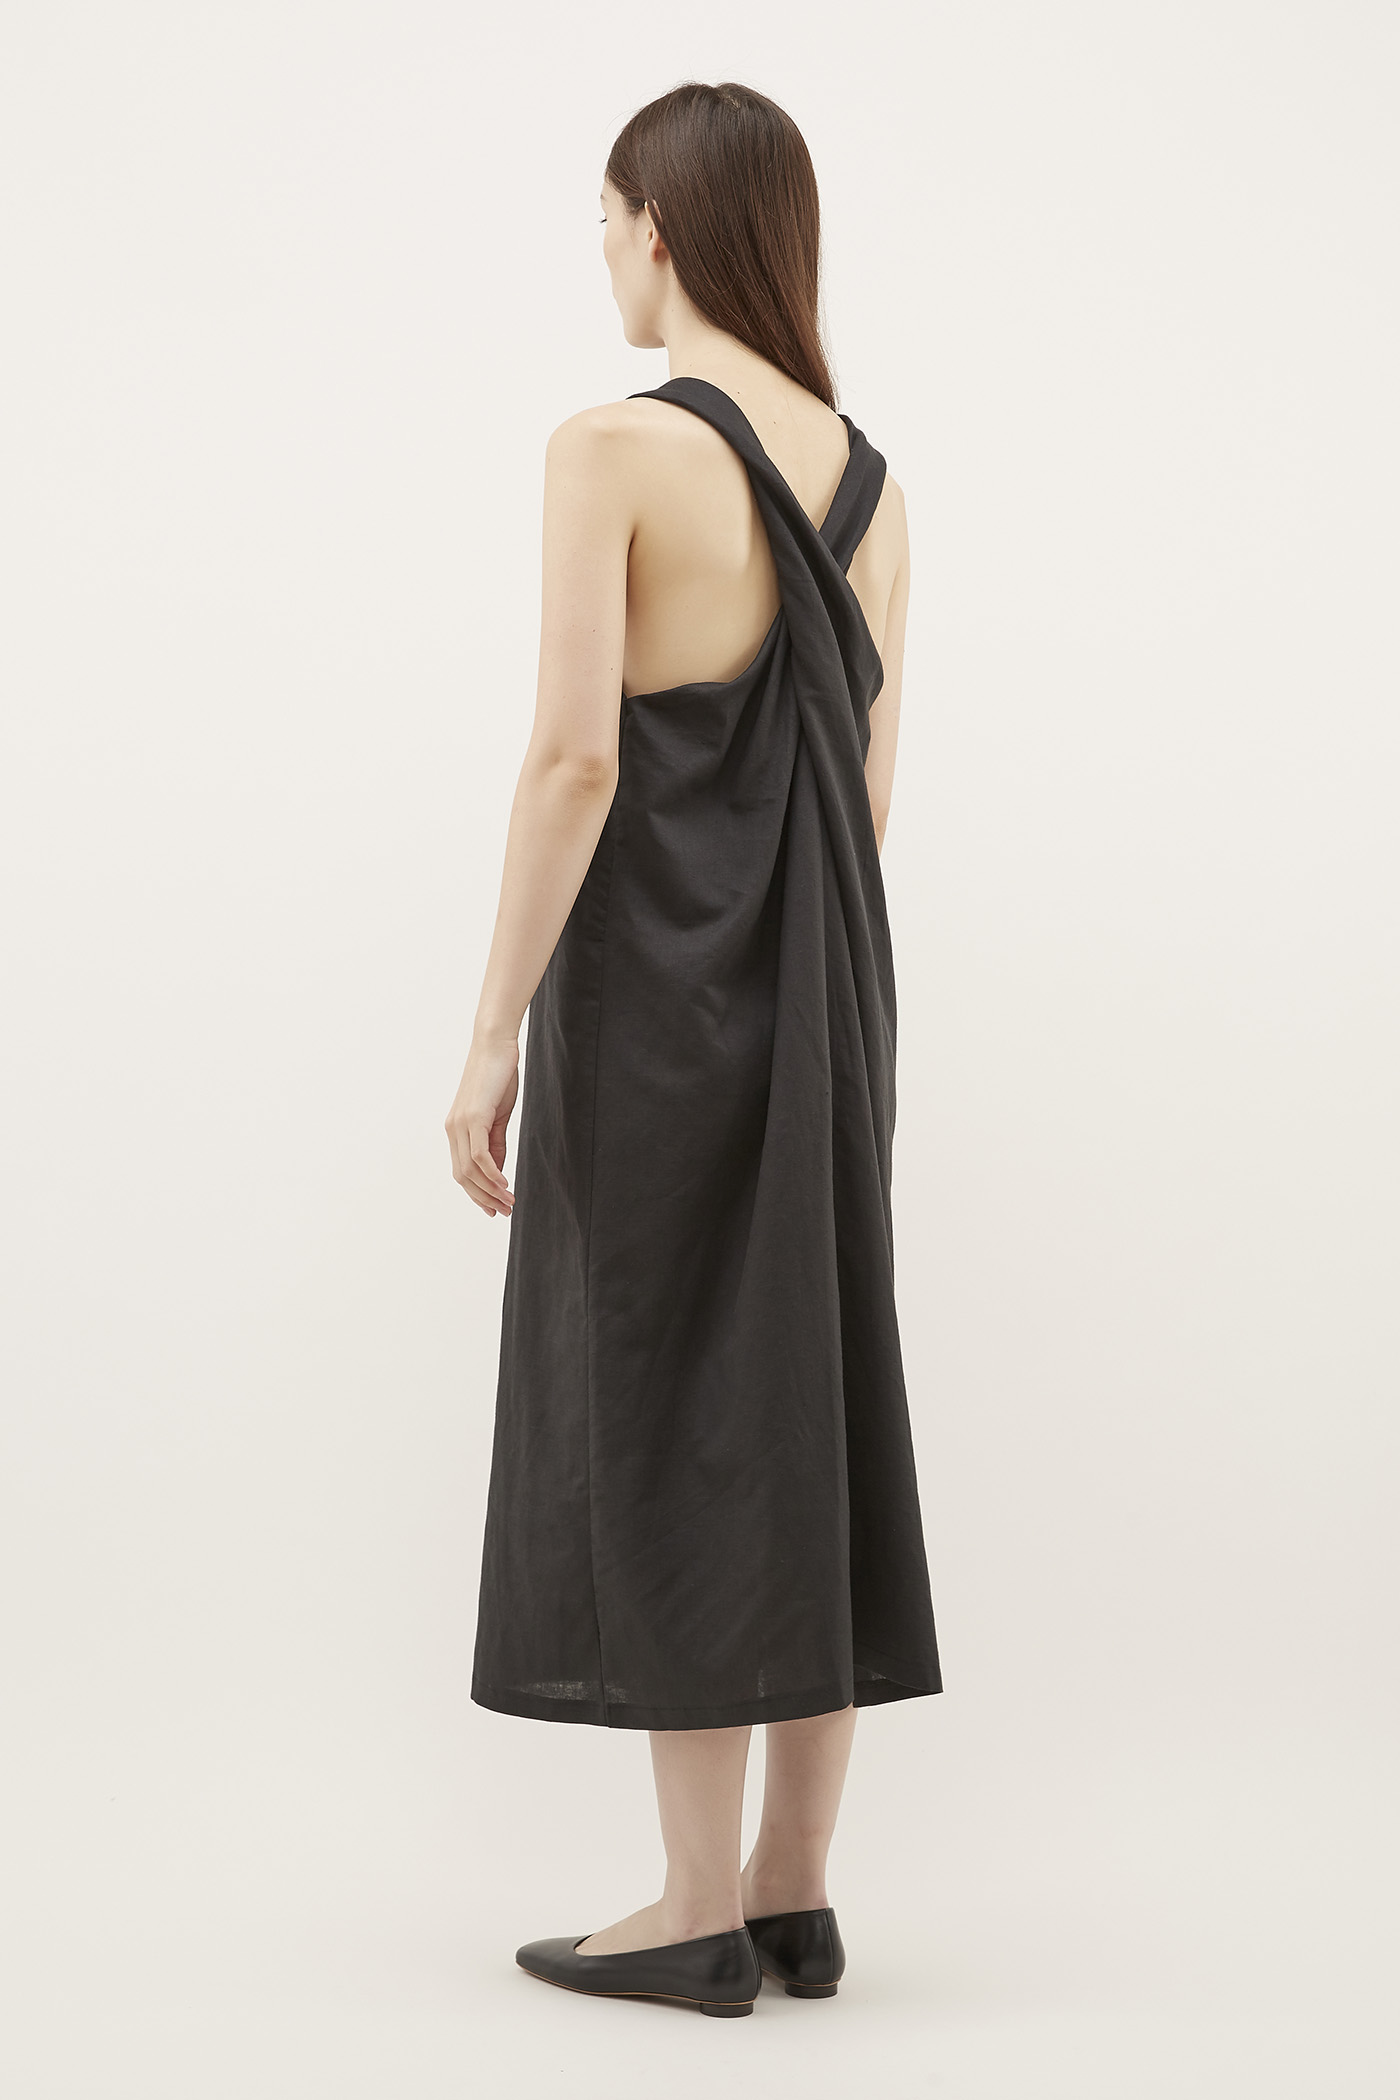 Mazel Twist-knot Dress